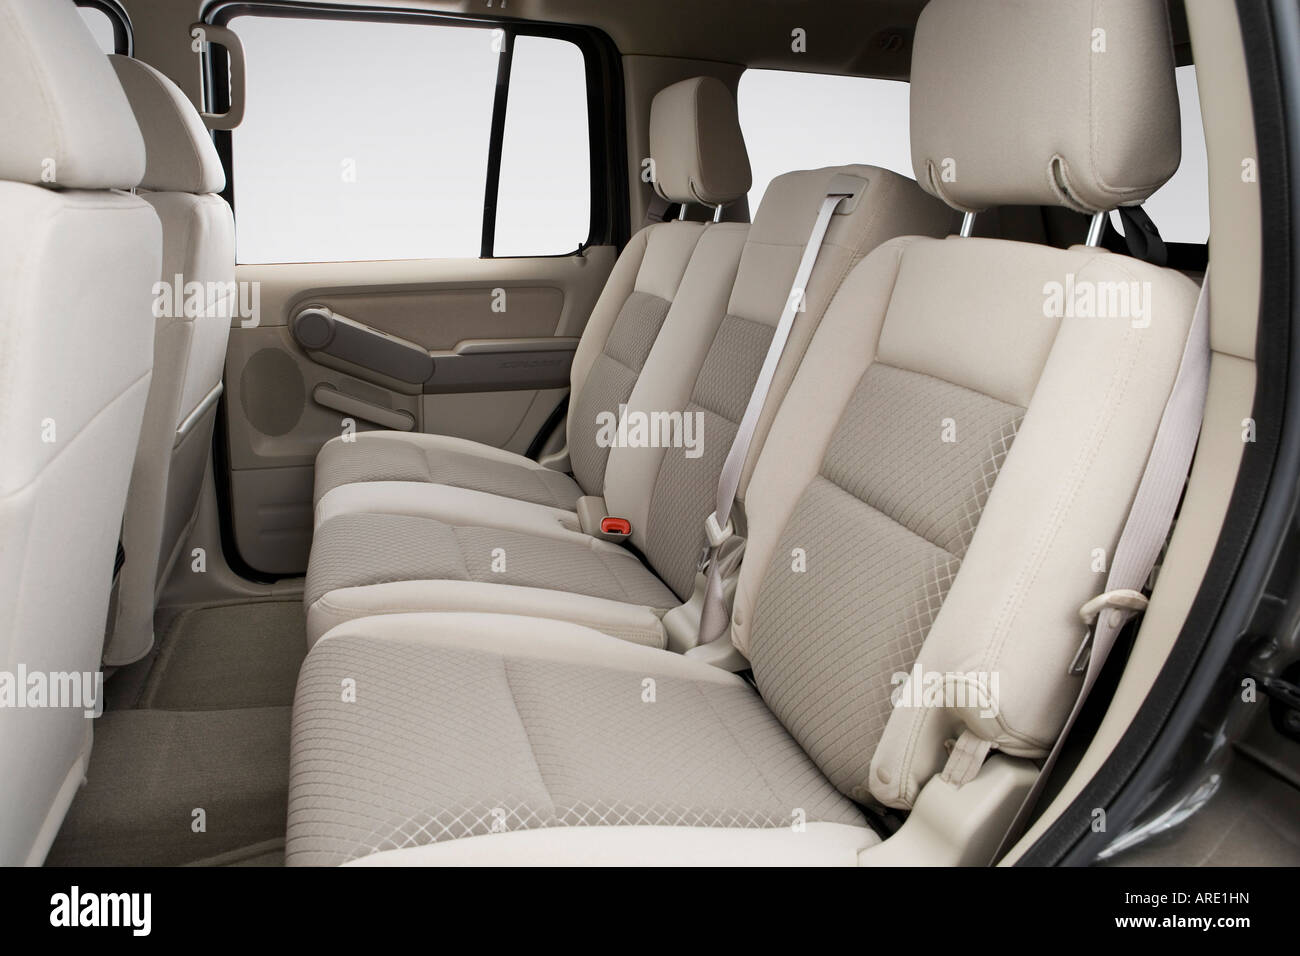 2006 Ford Explorer Xls In Gray Rear Seats Stock Photo